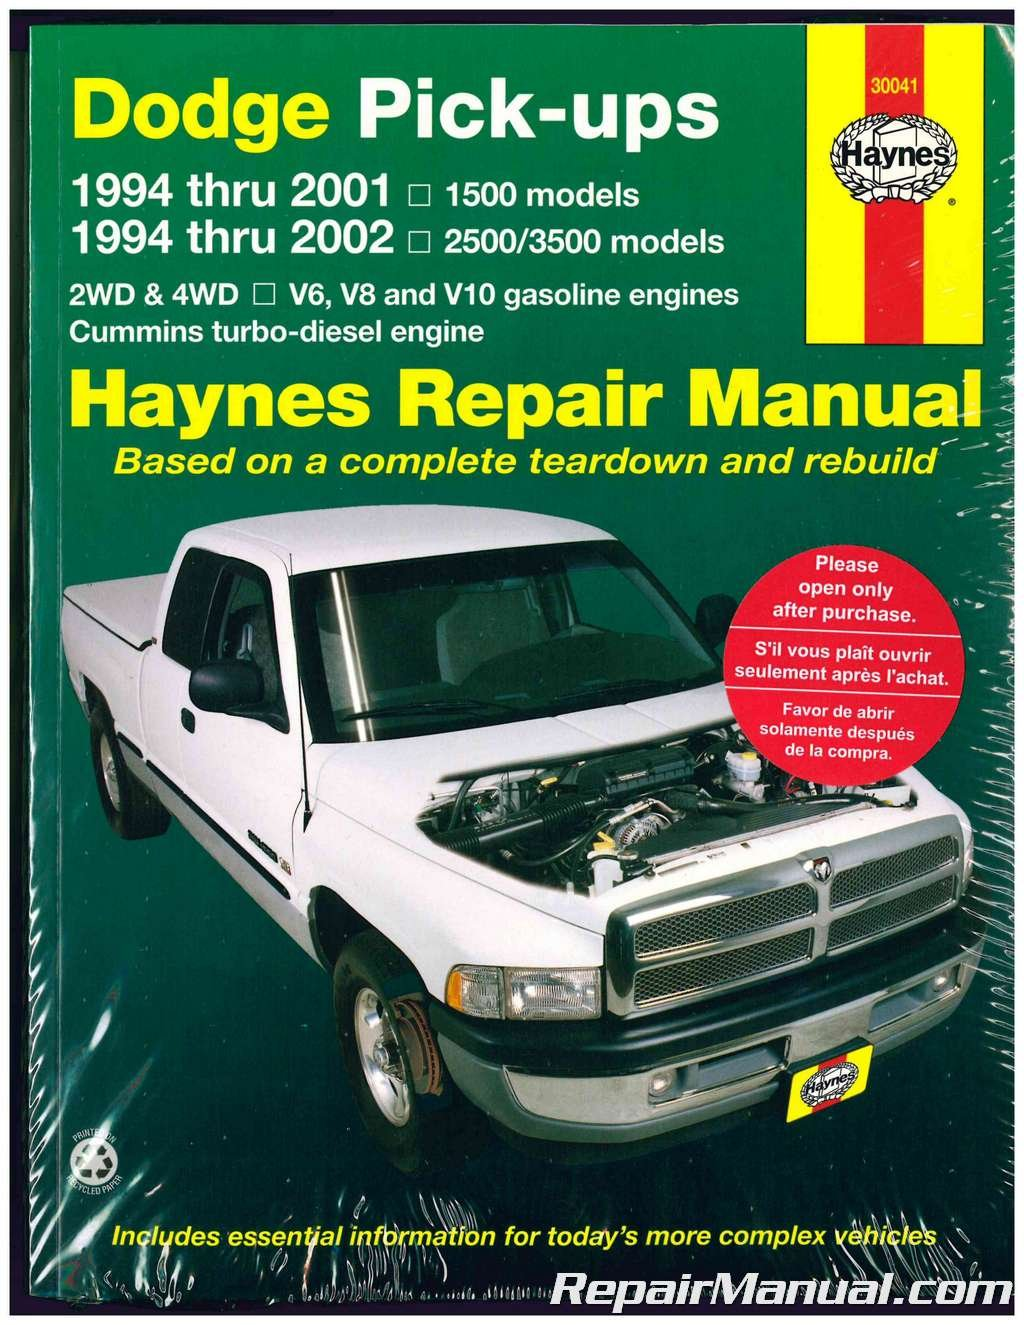 H30041 Dodge 1500 2500 3500 Pickup Truck Haynes Repair Manual 1994-2002:  Manufacturer: Amazon.com: Books